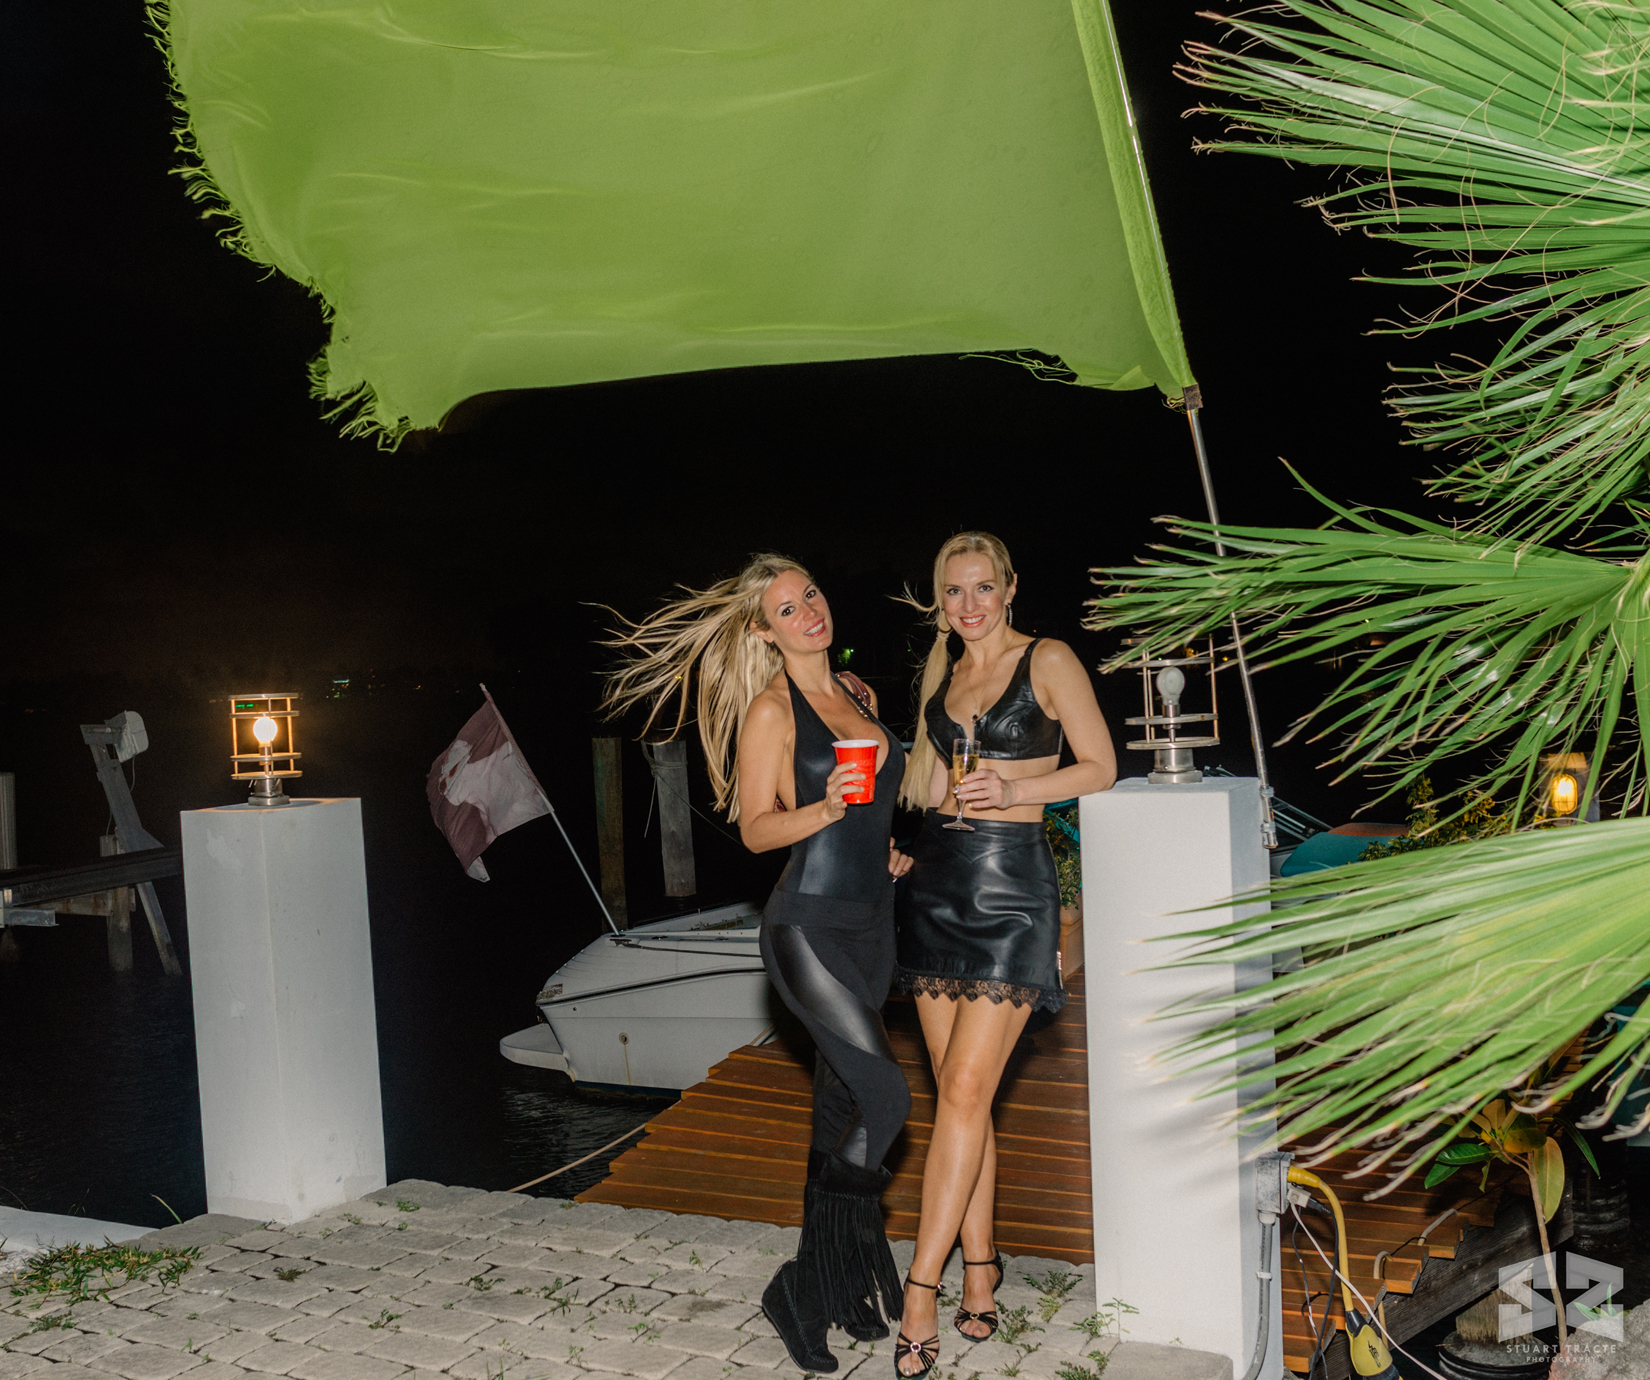 palm-island-party-nov-5-2015-17